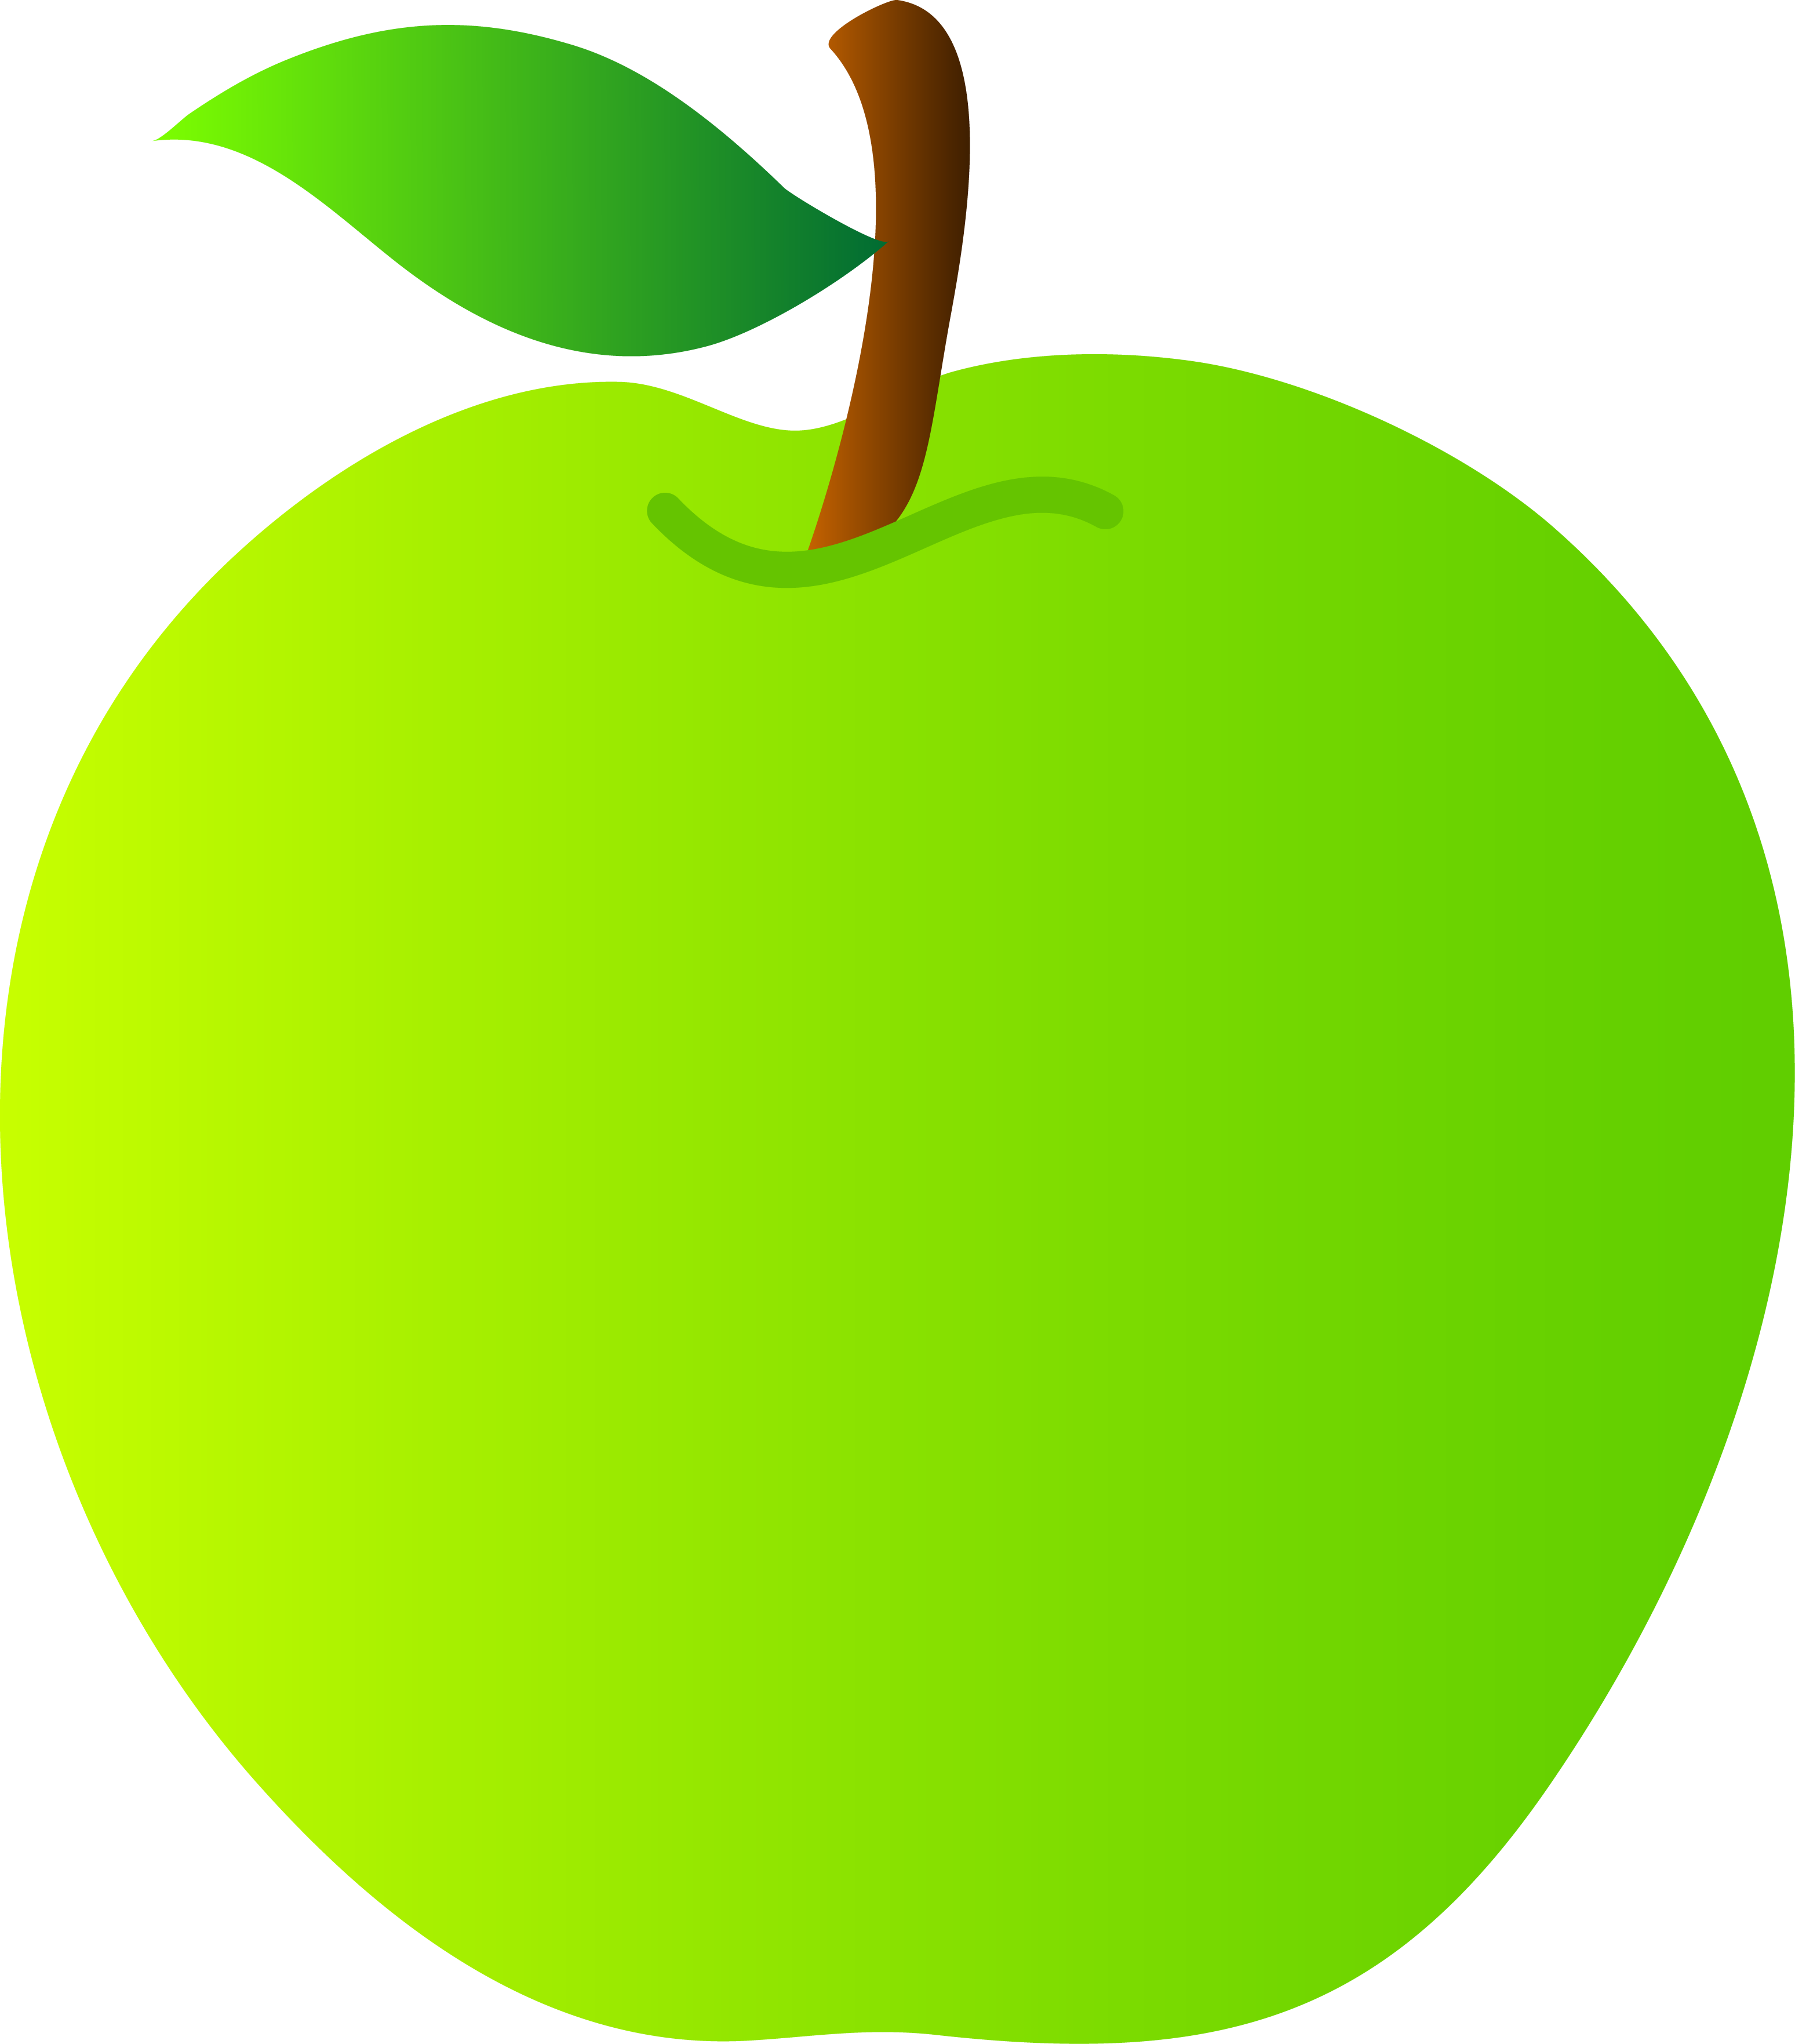 Free clipart apple row. Apples download clip art